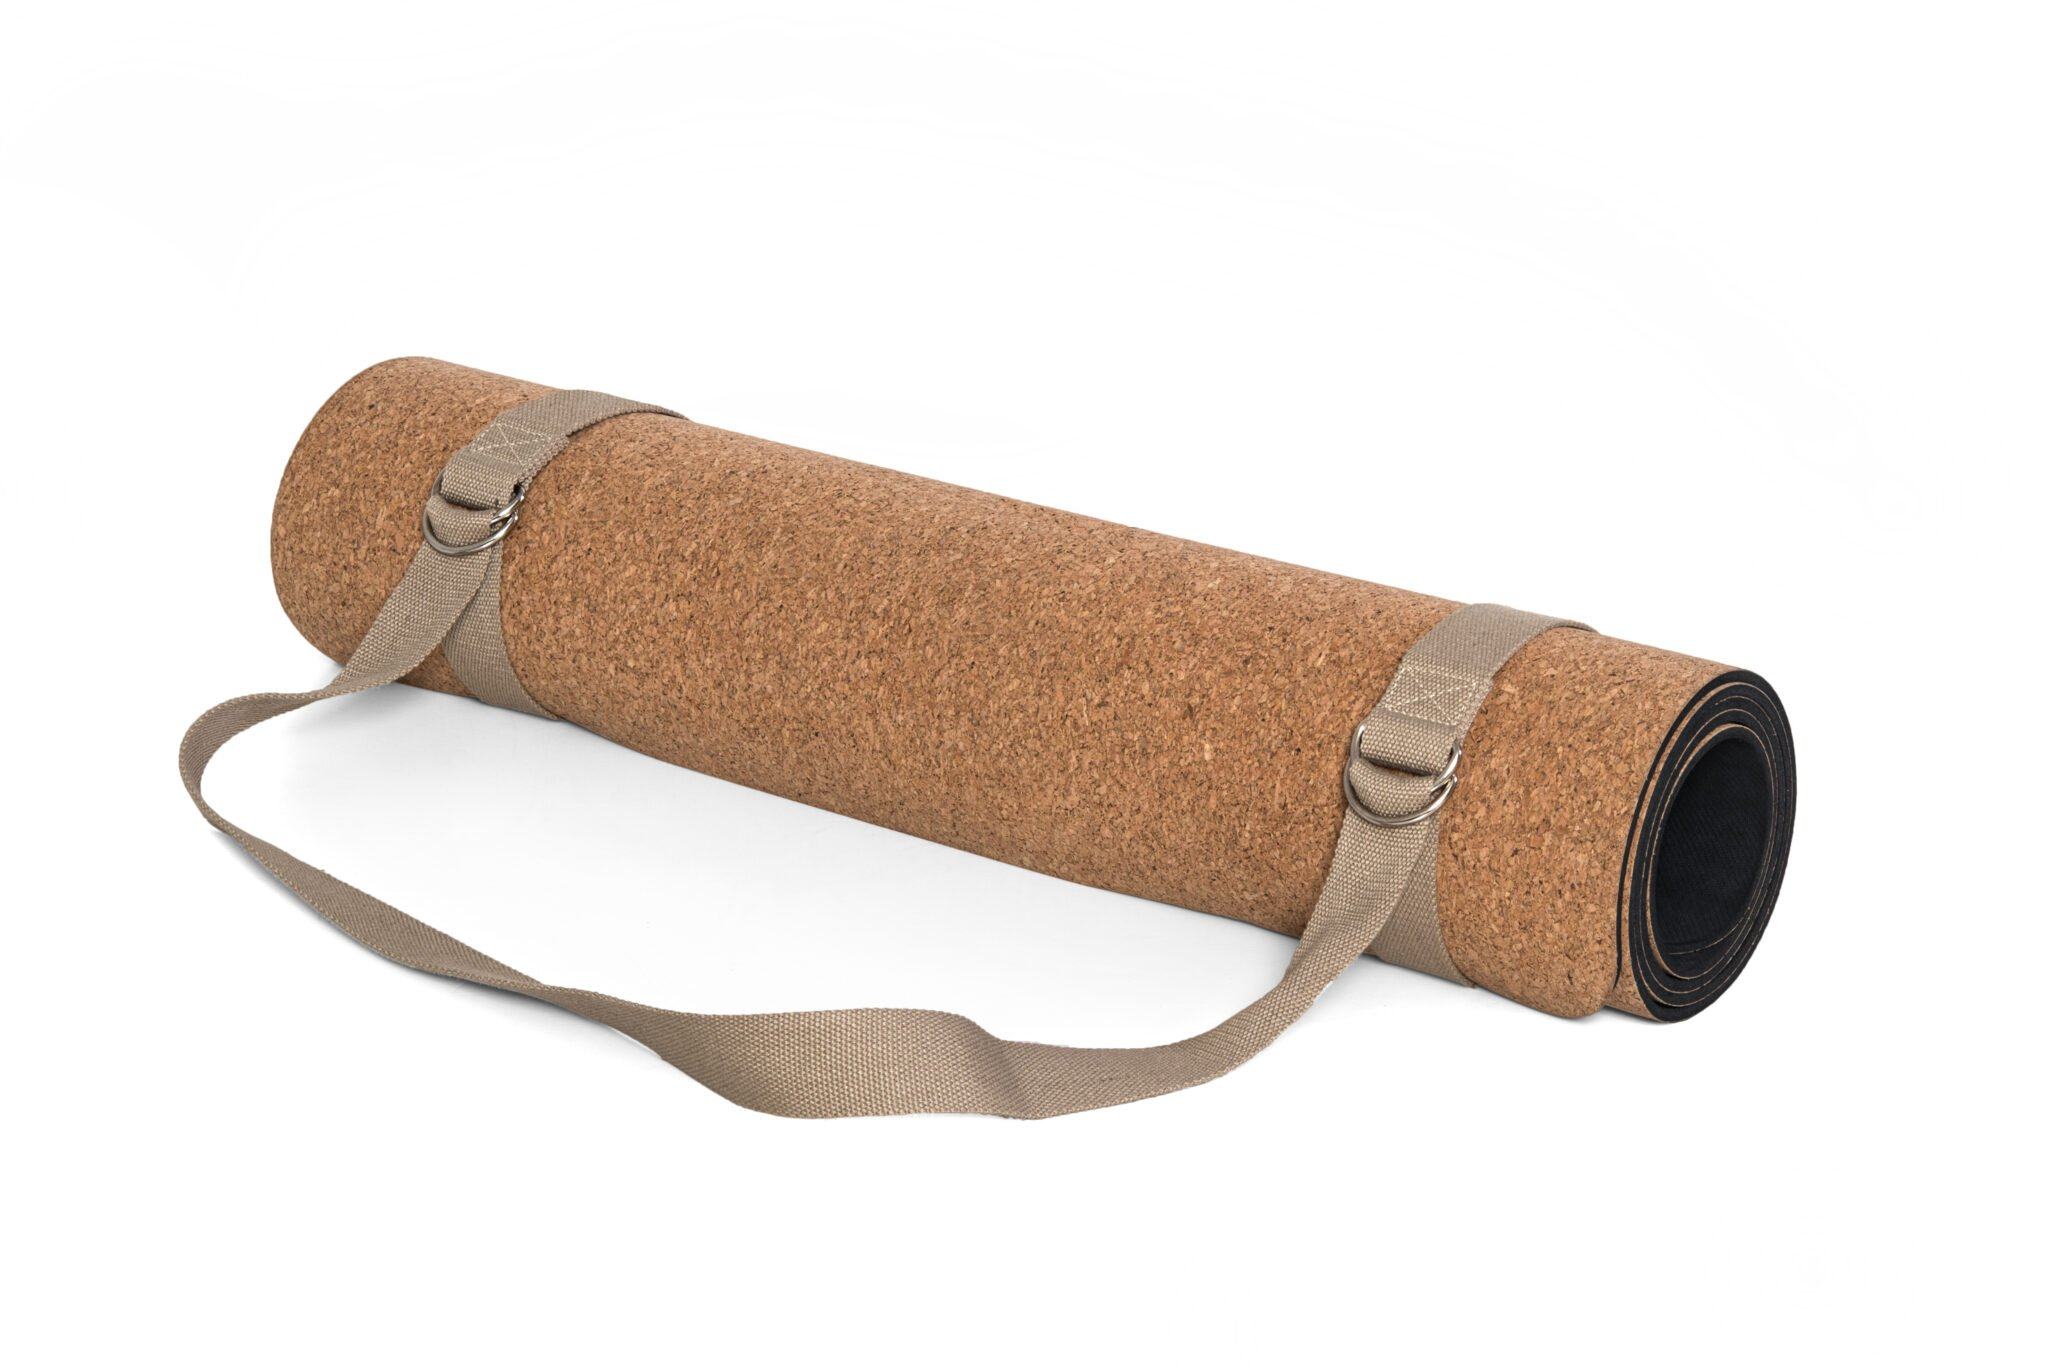 Cork yoga mats are antimicrobial and perfect for yogis with sweaty palms.